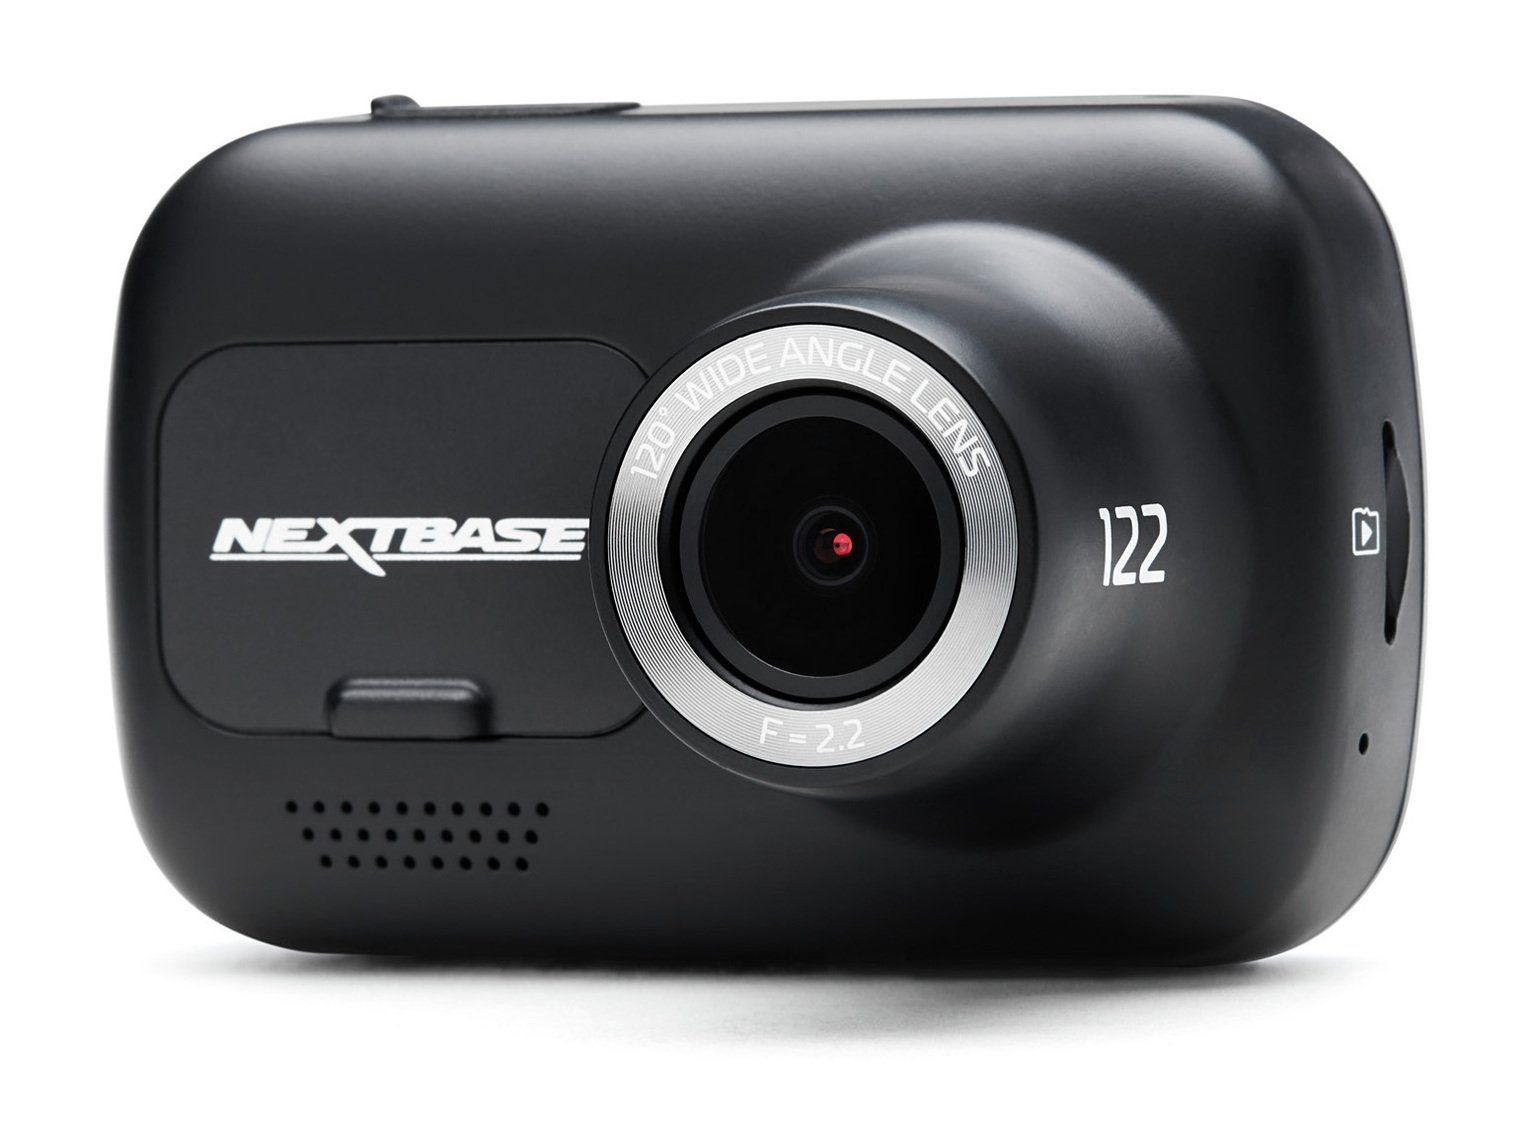 The Nextbase 122 is the new standard entry level Dash Cam, ideal for the younger or first time driver. It uses a brand new slick design, with a bright and clear 2-inch high resolution screen. The 122 utilises an improved F2.2 lens with recording at 720p HD to capture those all-important details. It features a higher accuracy G sensor and Intelligent Parking Mode for increased protection. This can be used to record any physical movement on the vehicle when left unattended and is designed to work